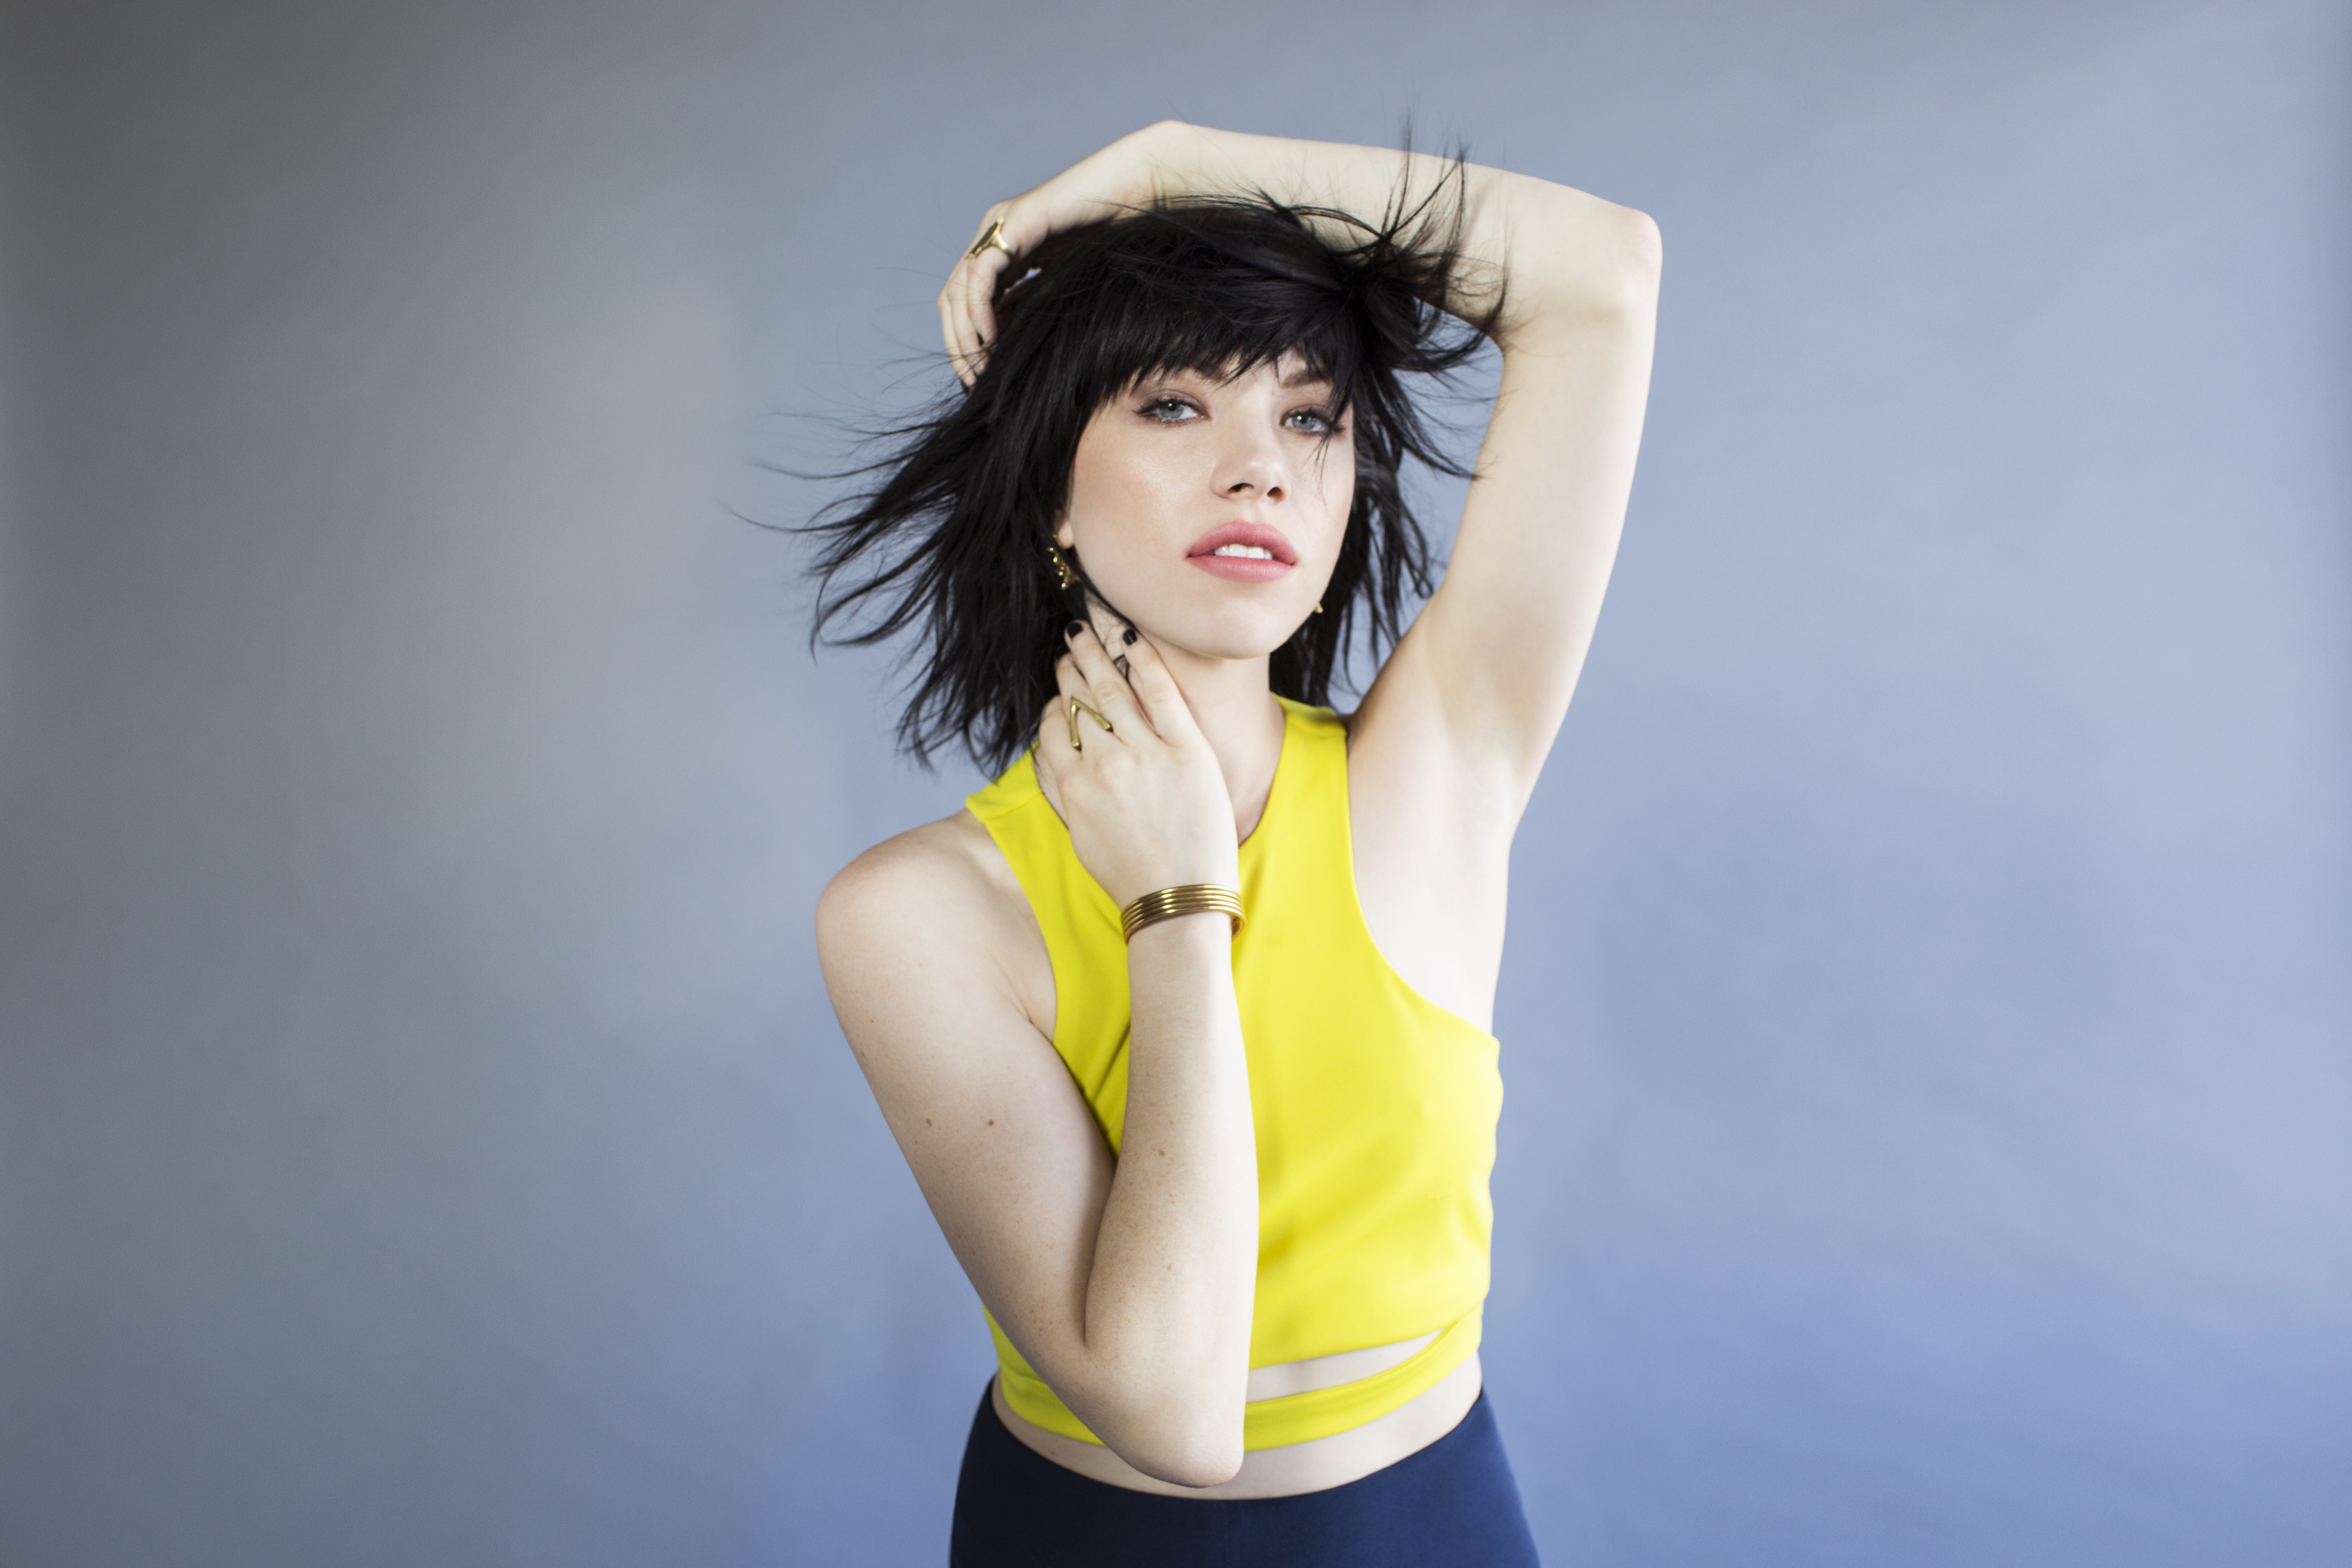 Carly Rae Jepsen Boobs